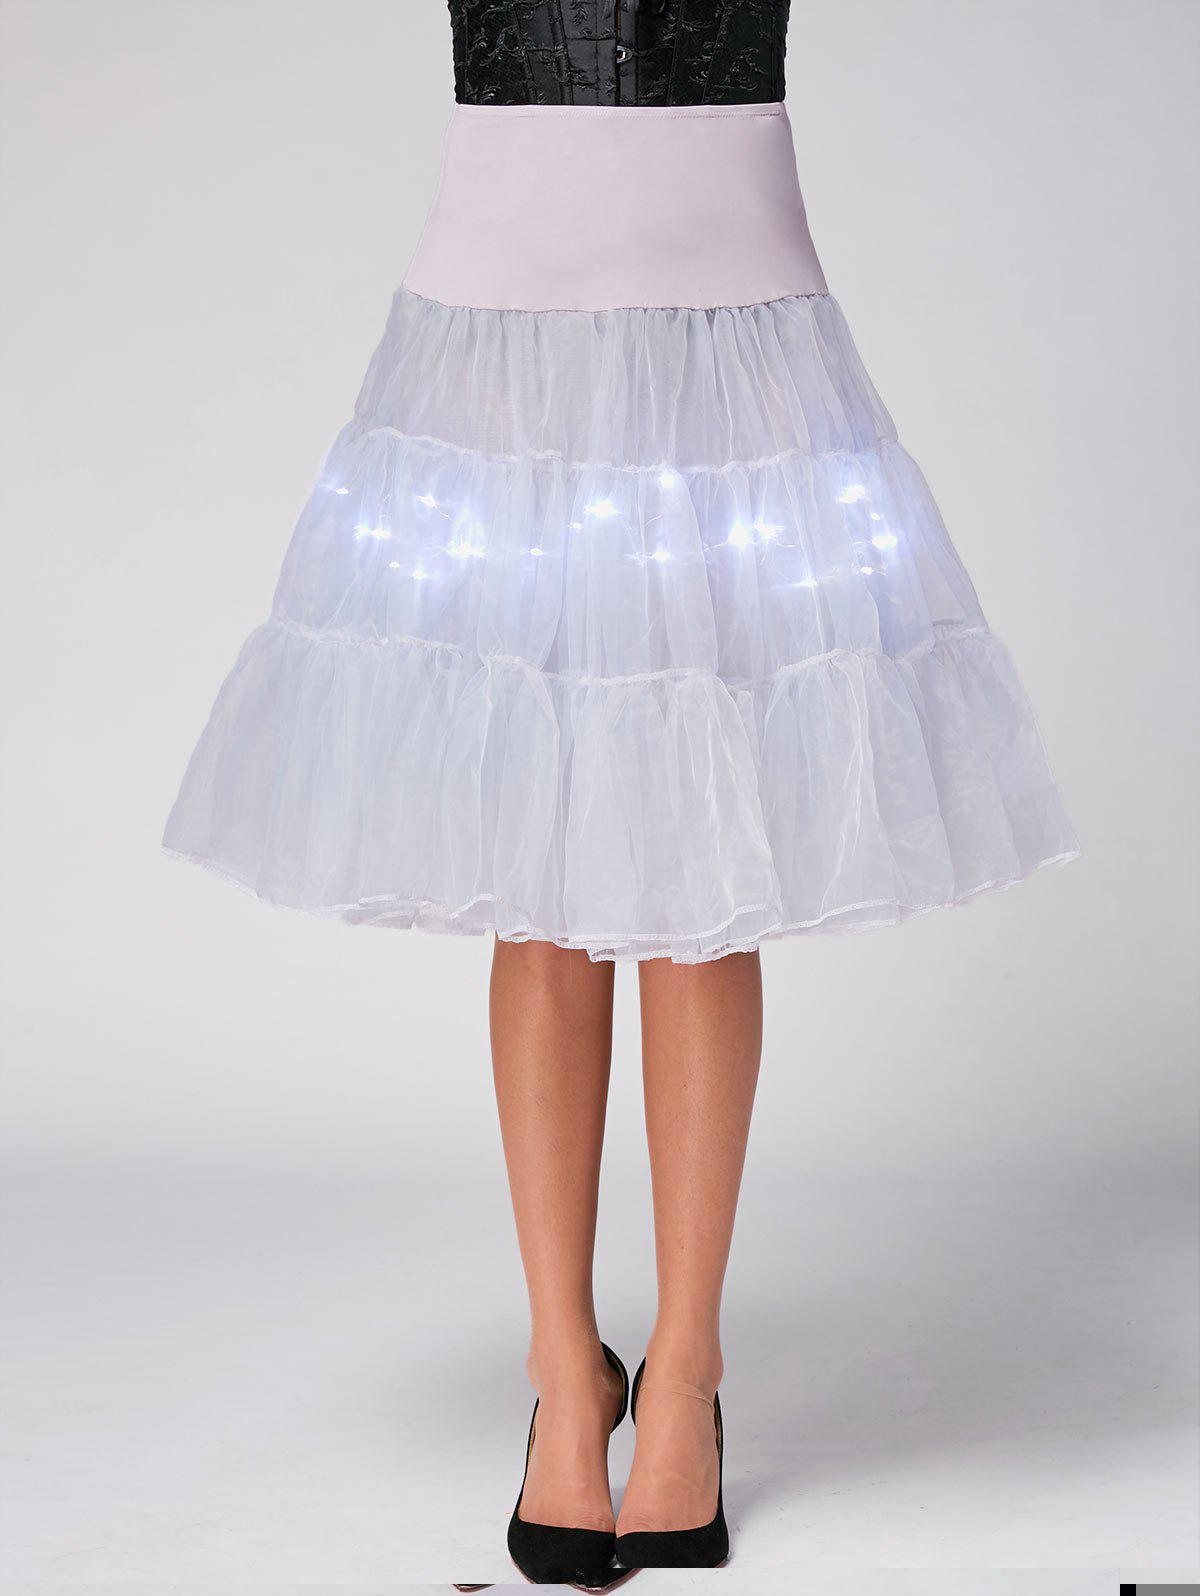 Flounce Light Up Cosplay Jupe - Gris Clair M